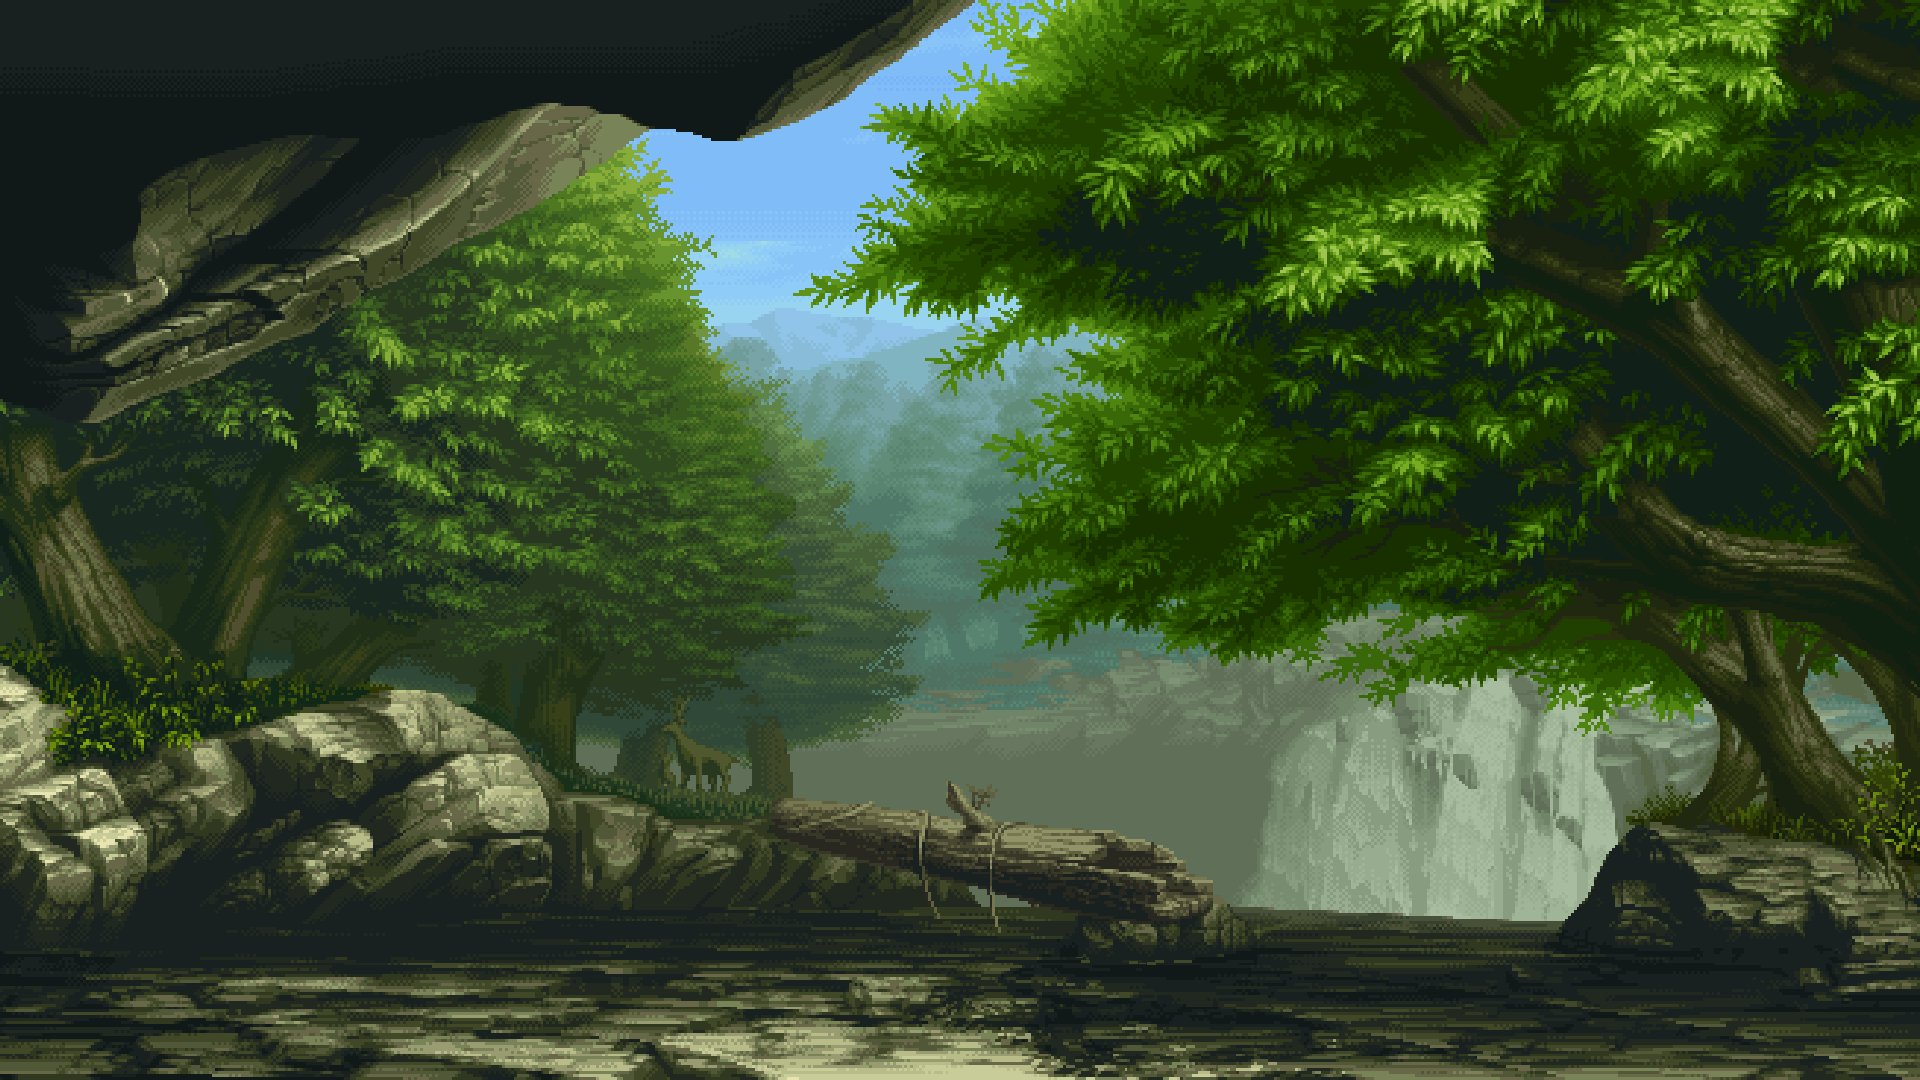 General 1920x1080 pixelated pixel art forest trees nature